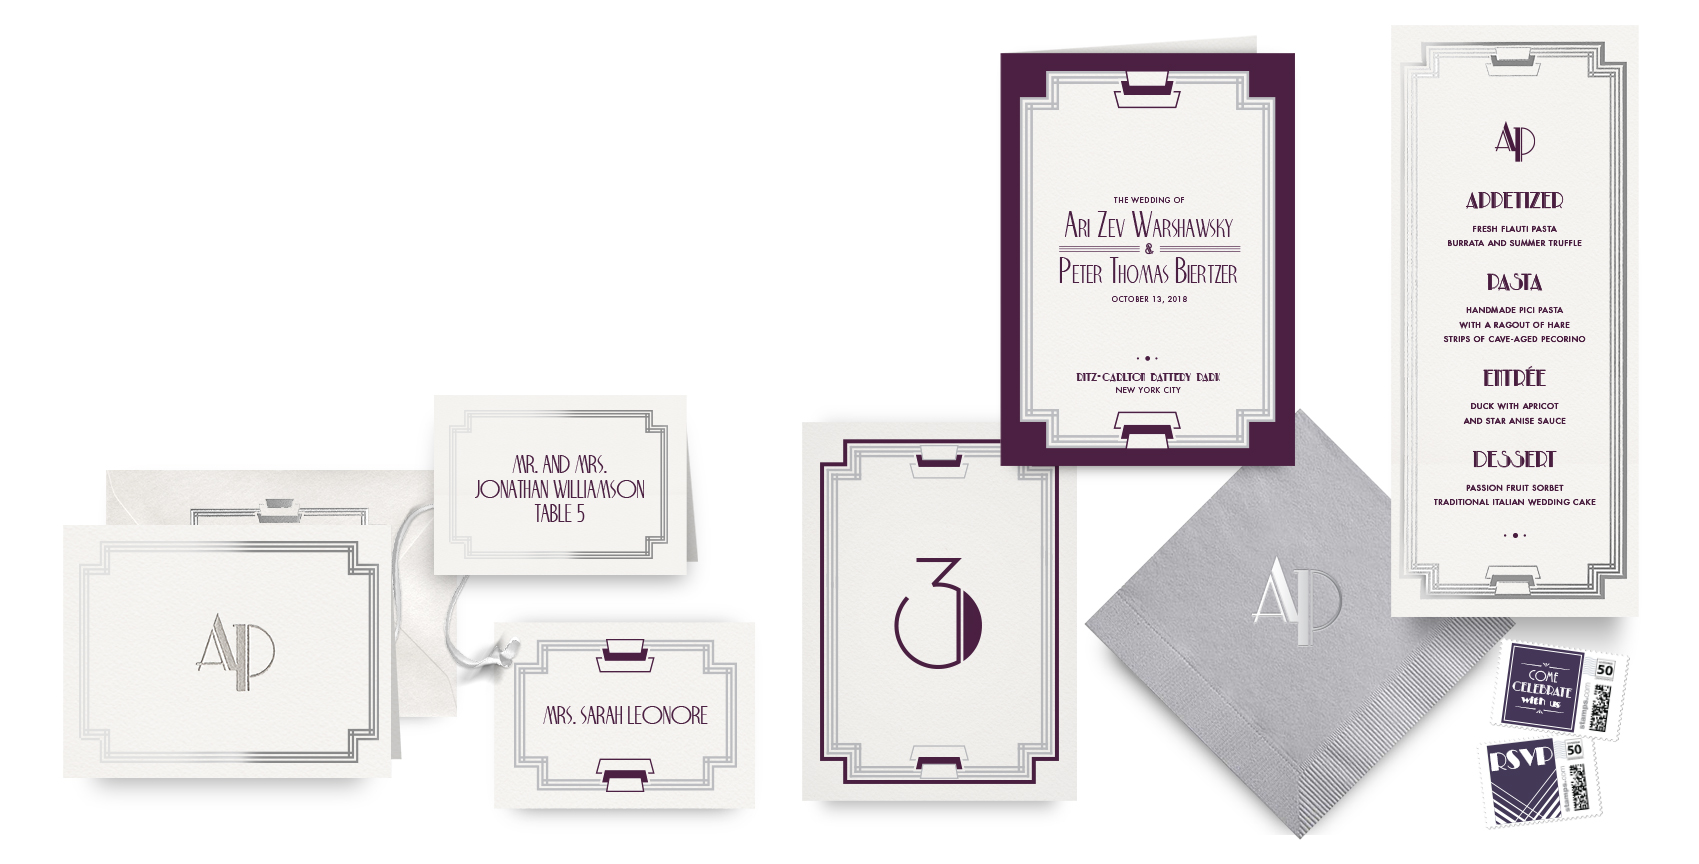 Modern Deco menus, programs and wedding accessories